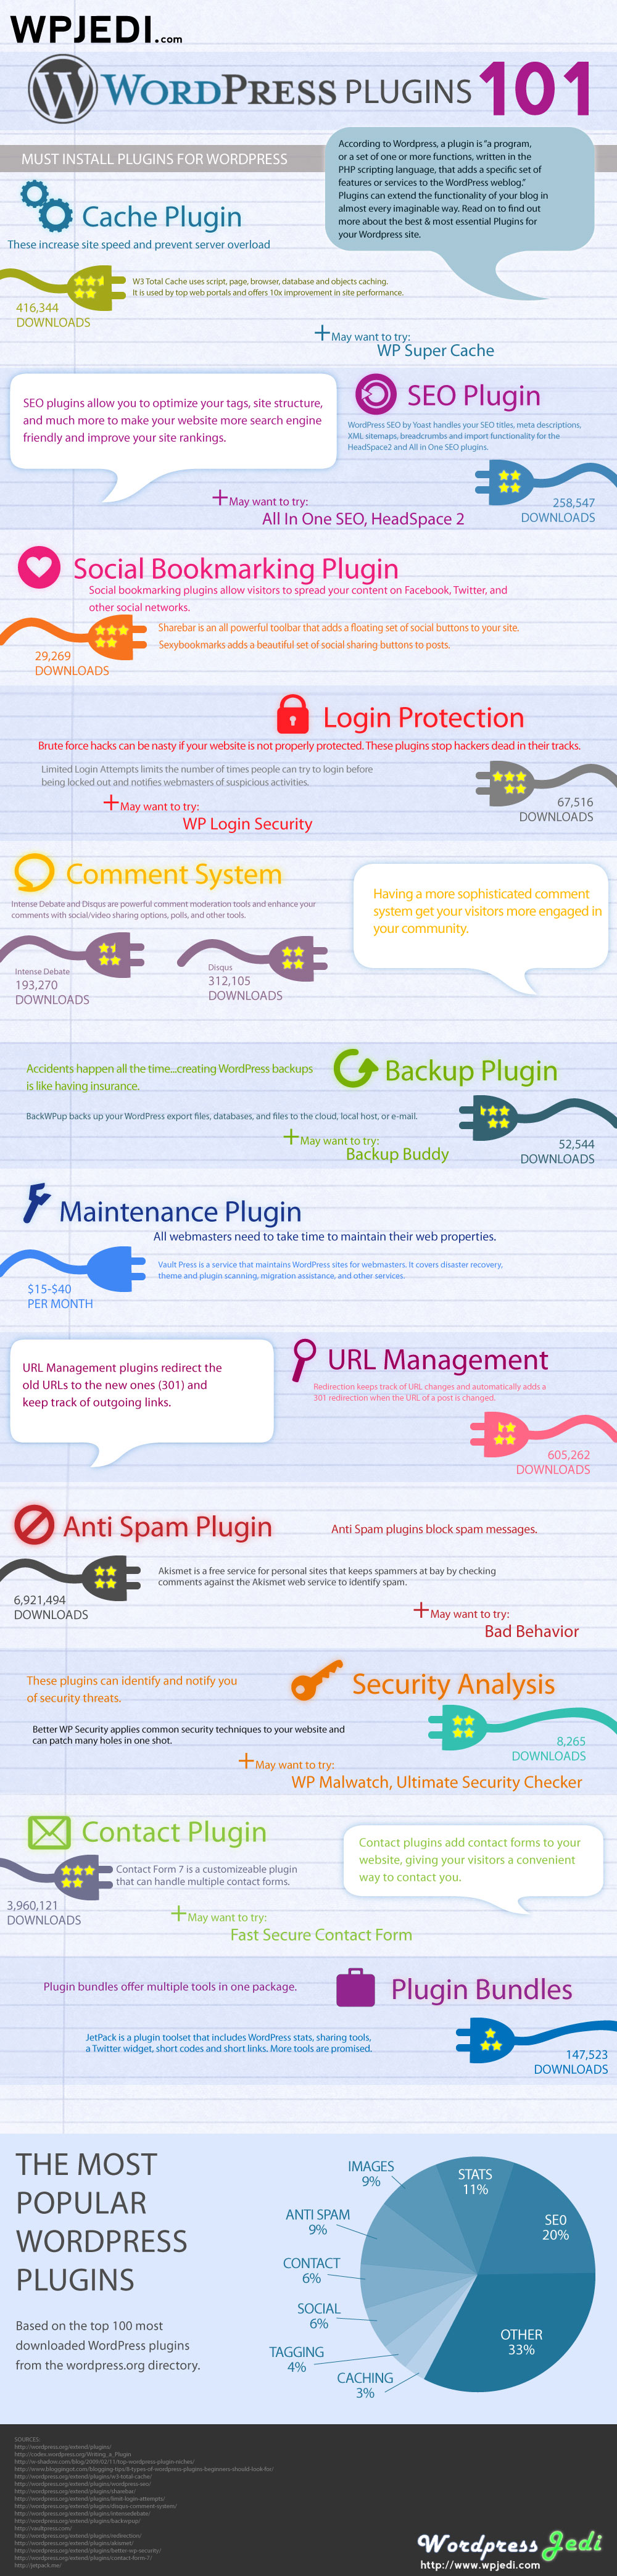 WordPress Plugins 101